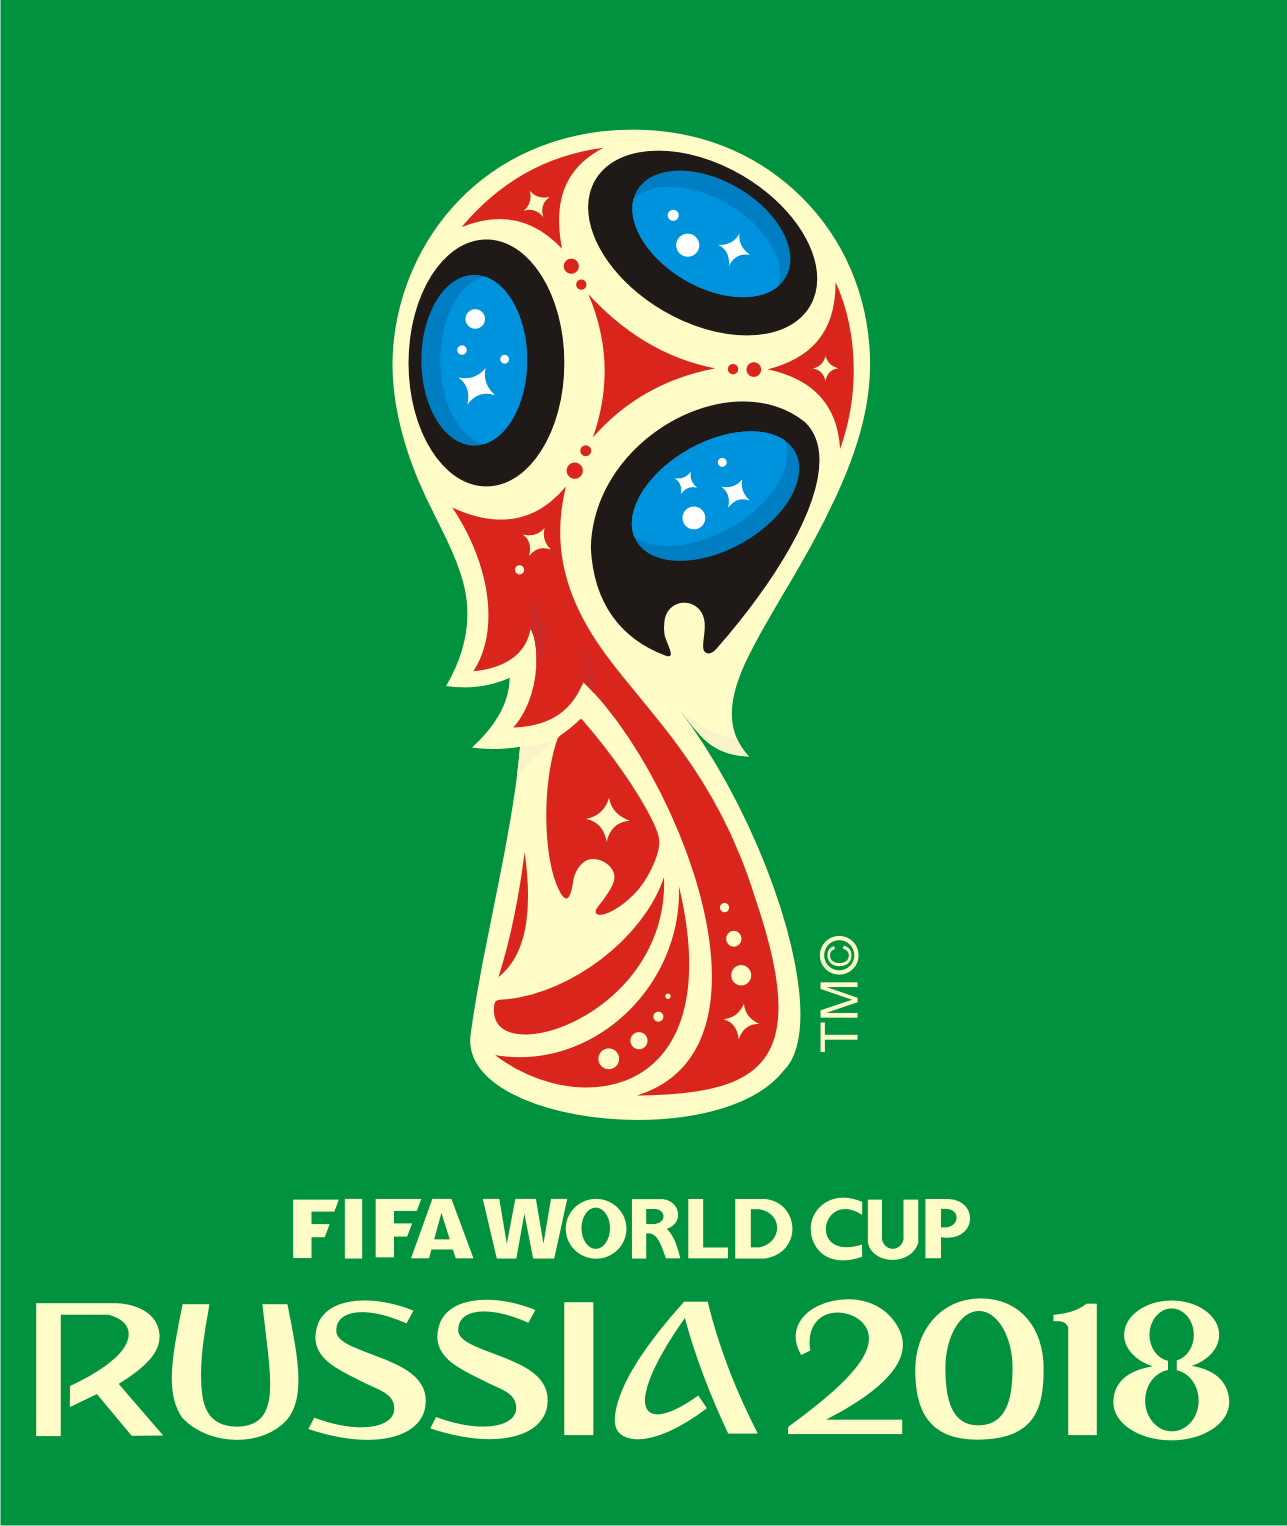 The Winners Will Qualify For The 2021 FIFA Confederations Cup. - Fifa World Cup 2018 Vector PNG